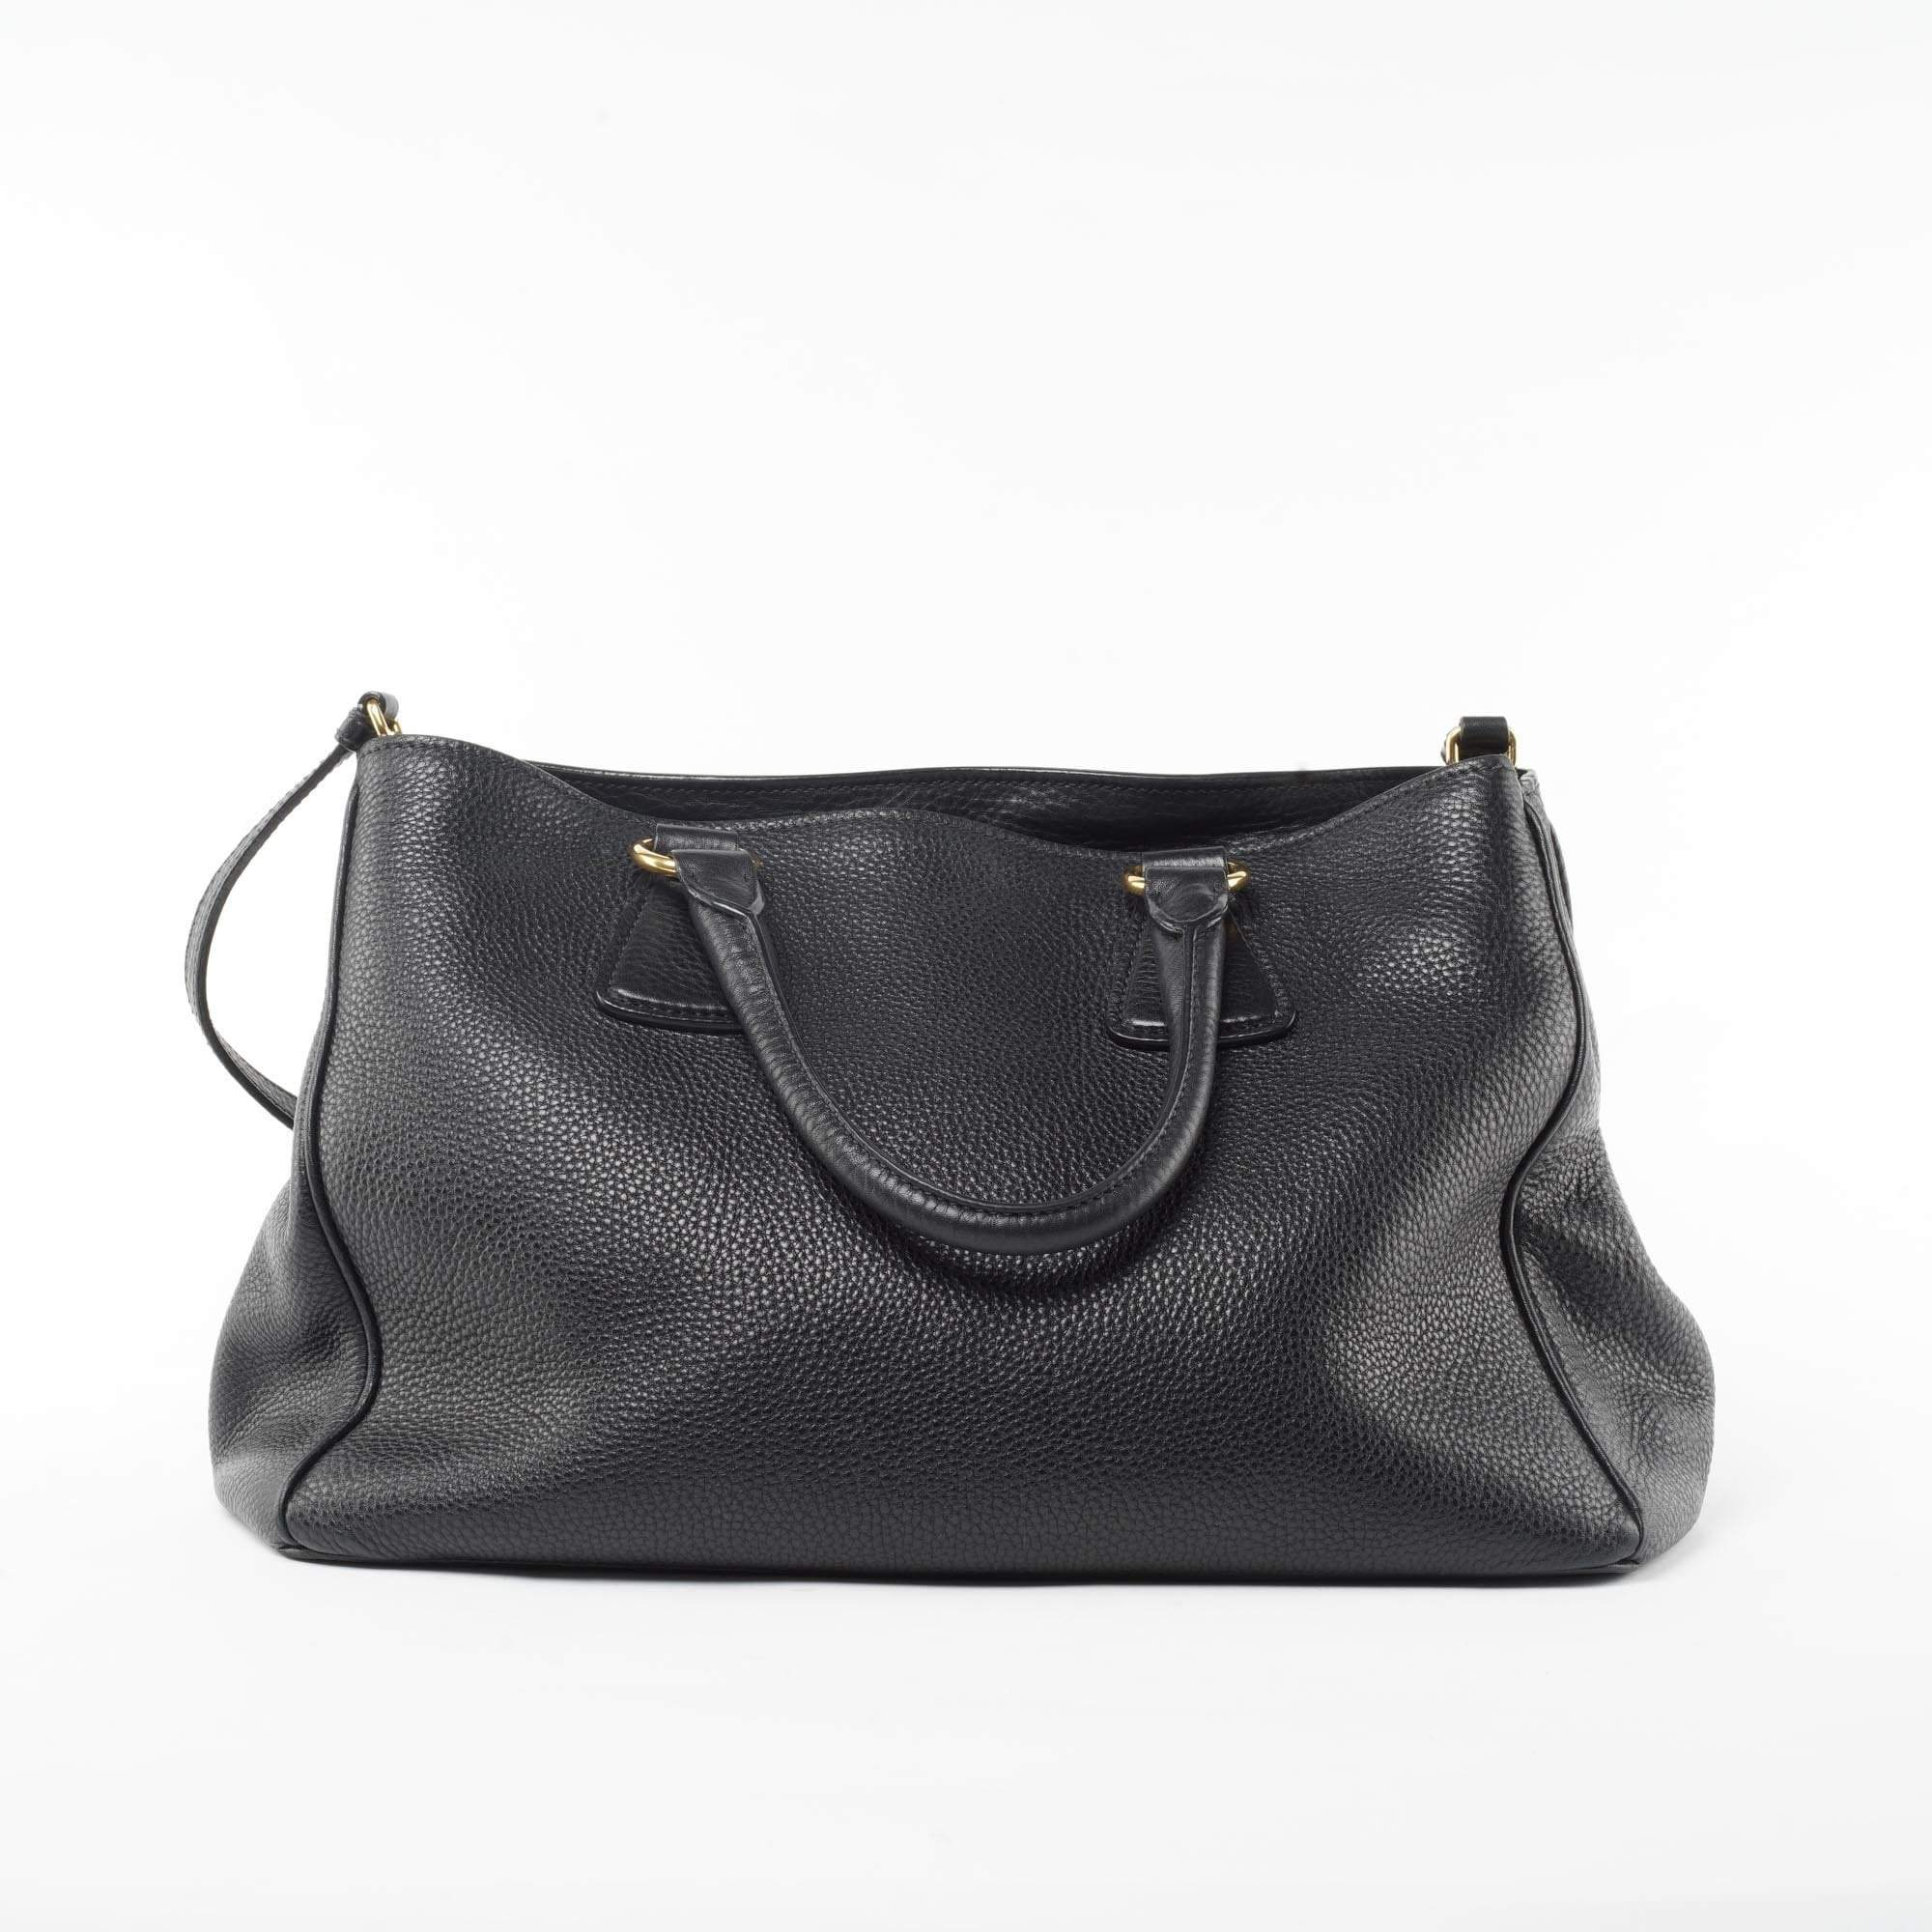 Prada Black Pebbled Leather Vitello Daino Tote Bag